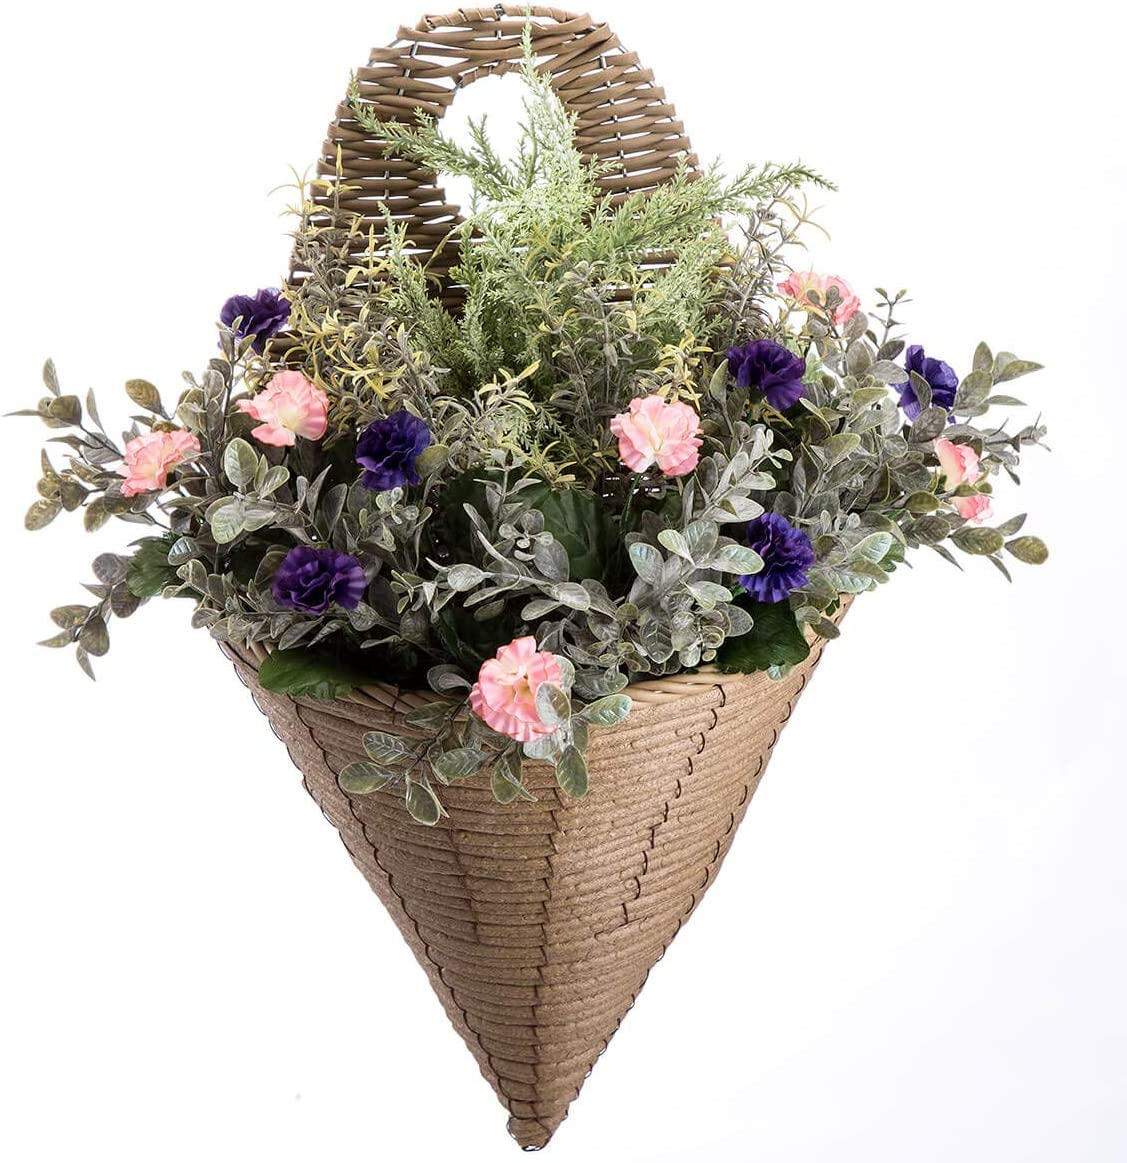 Special sale item OakRidge Morning Glory Wall Hanging Fresno Mall Flower Ar Basket Artificial